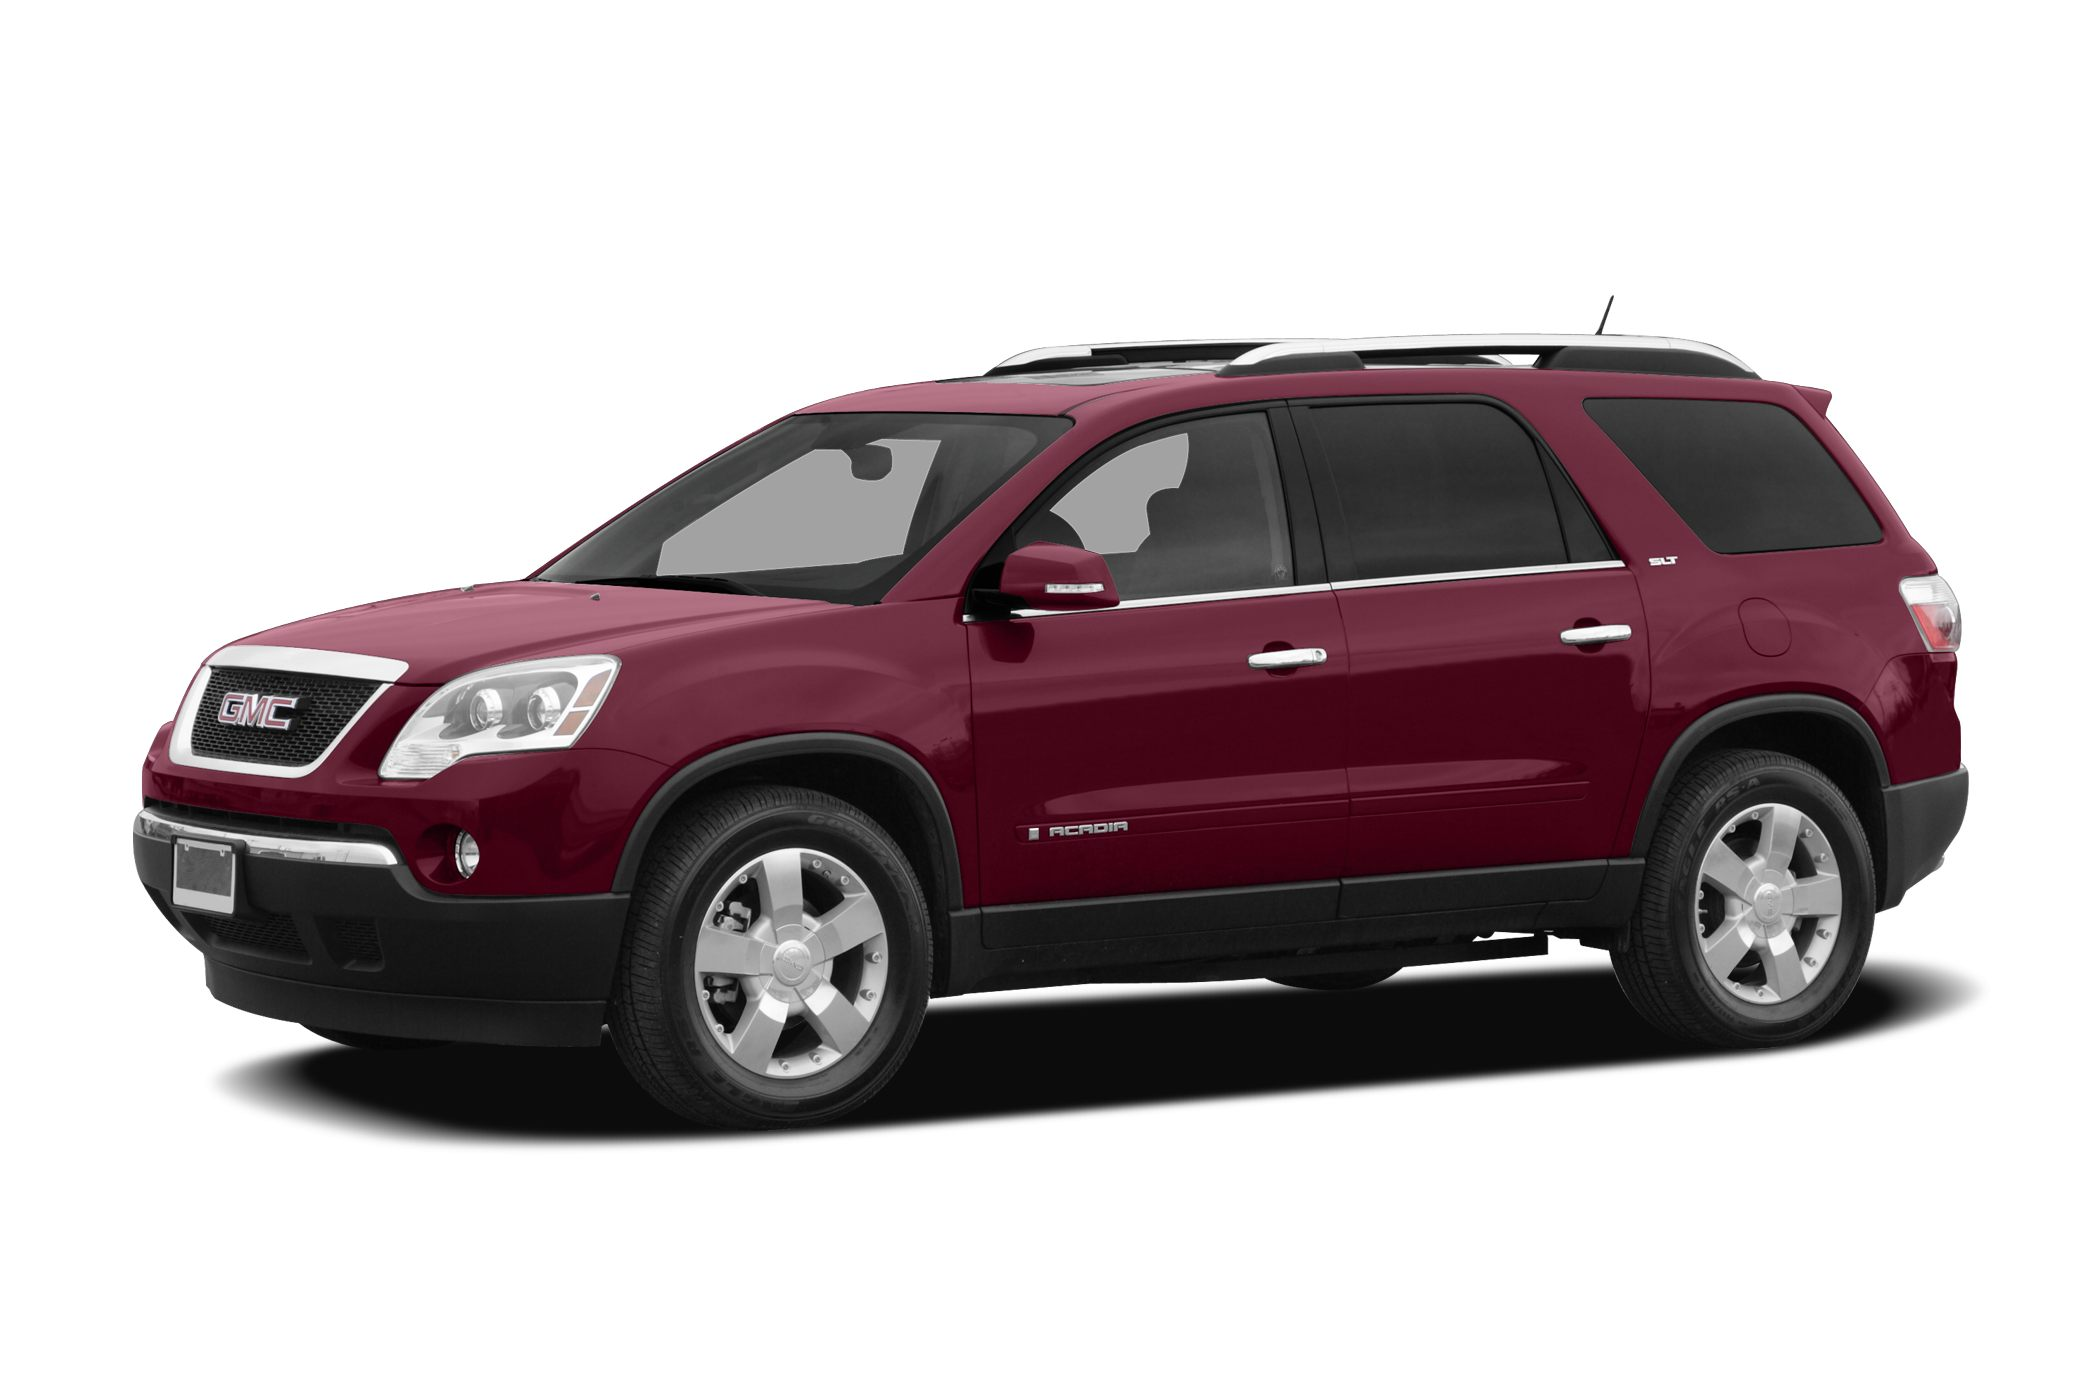 2007 GMC Acadia SLT2 SUV for sale in Greer for $17,350 with 95,536 miles.